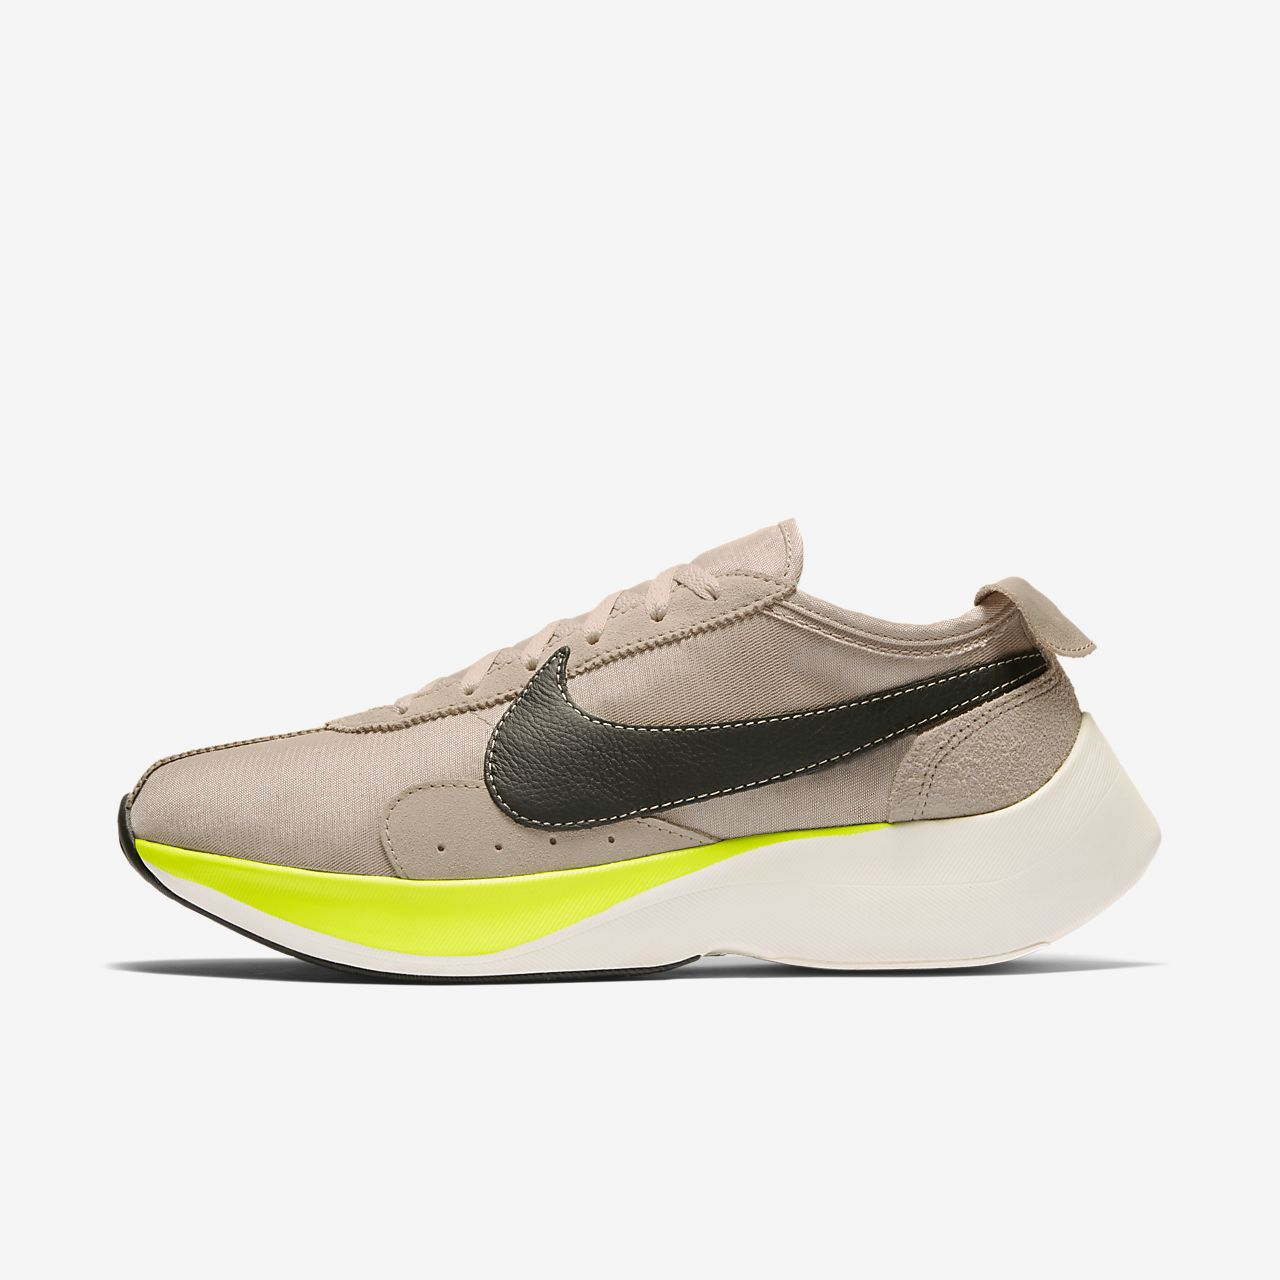 new style 837cb 267c6 Chaussure Nike Moon Racer pour Homme. Nike.com CH